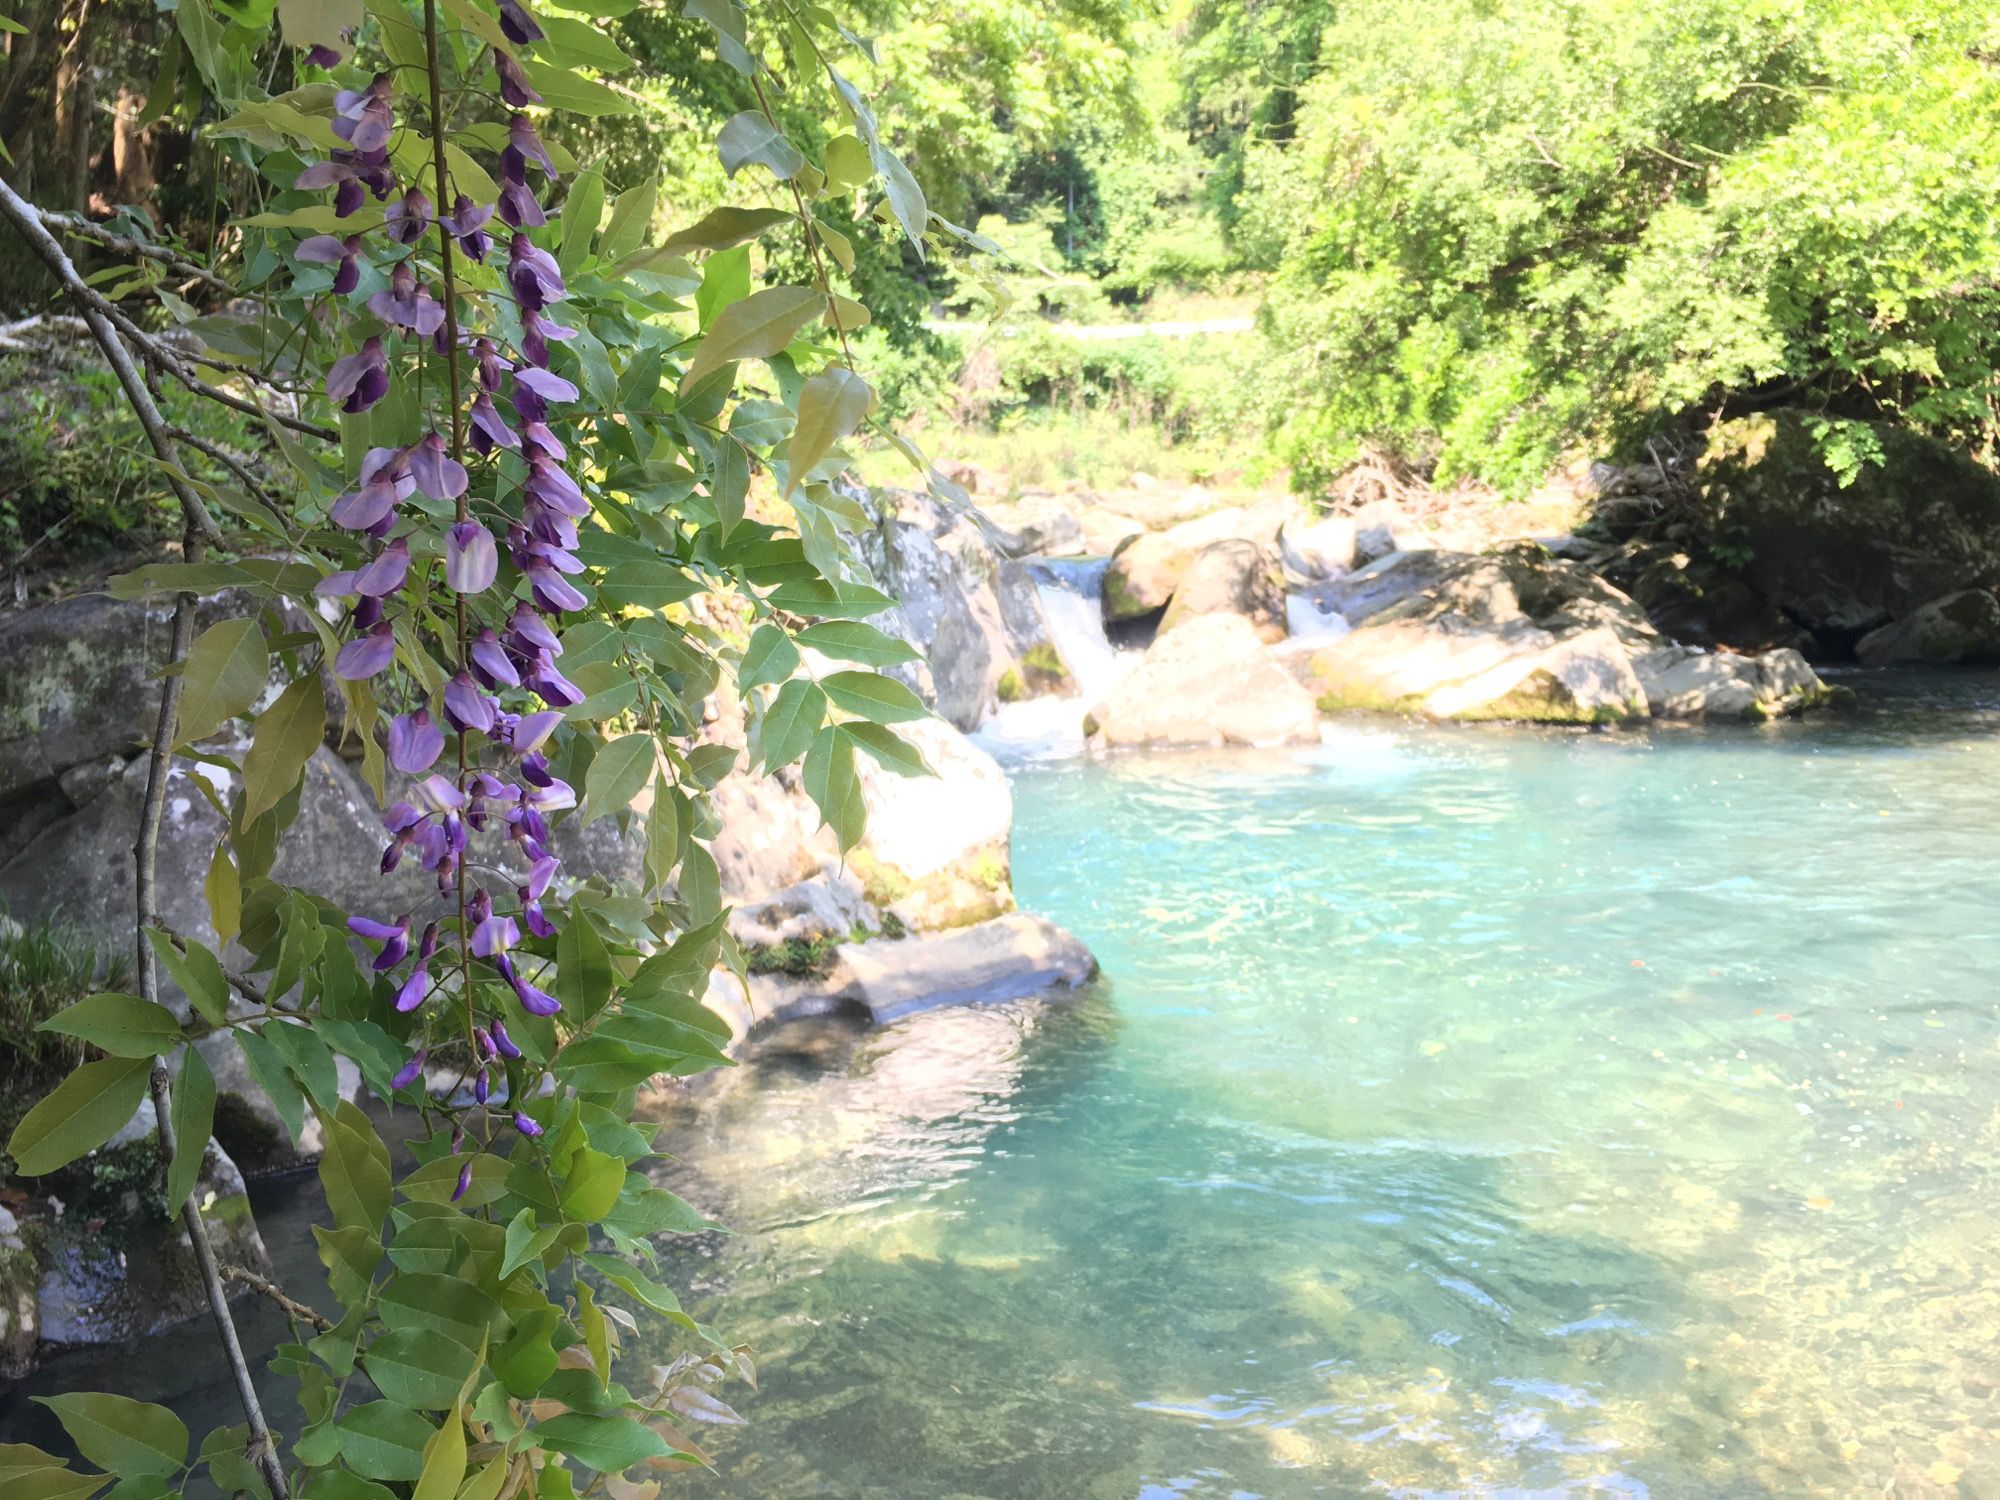 Lilac and gin clear water